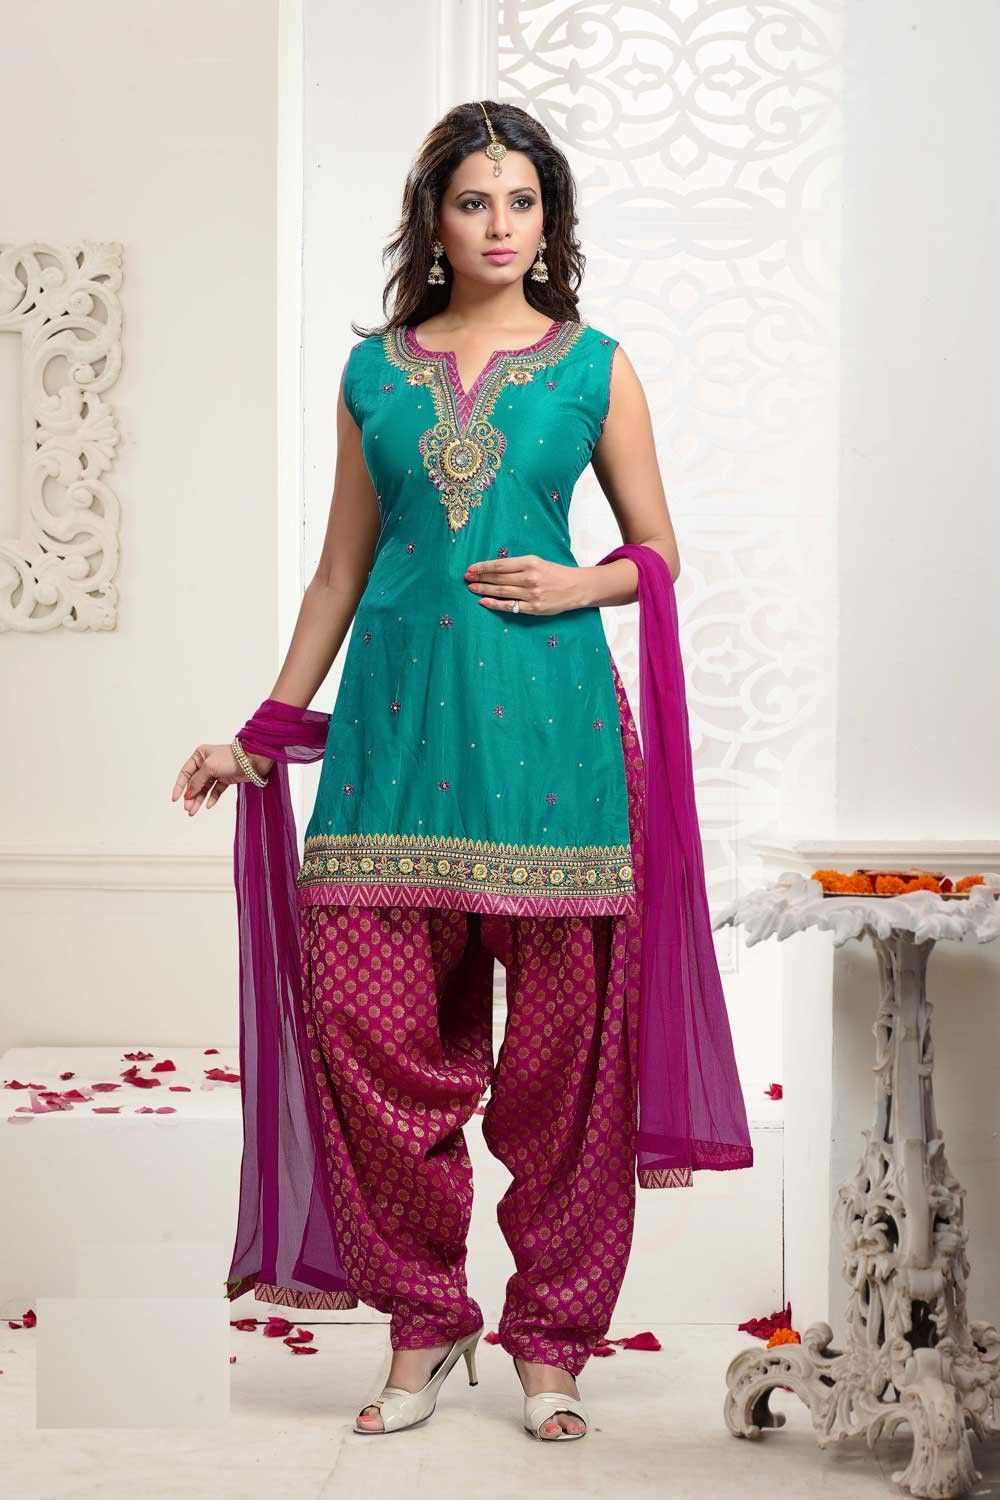 Green Patiala Suits, Silk Patiala Suits, AU$236.35. Buy latest ...